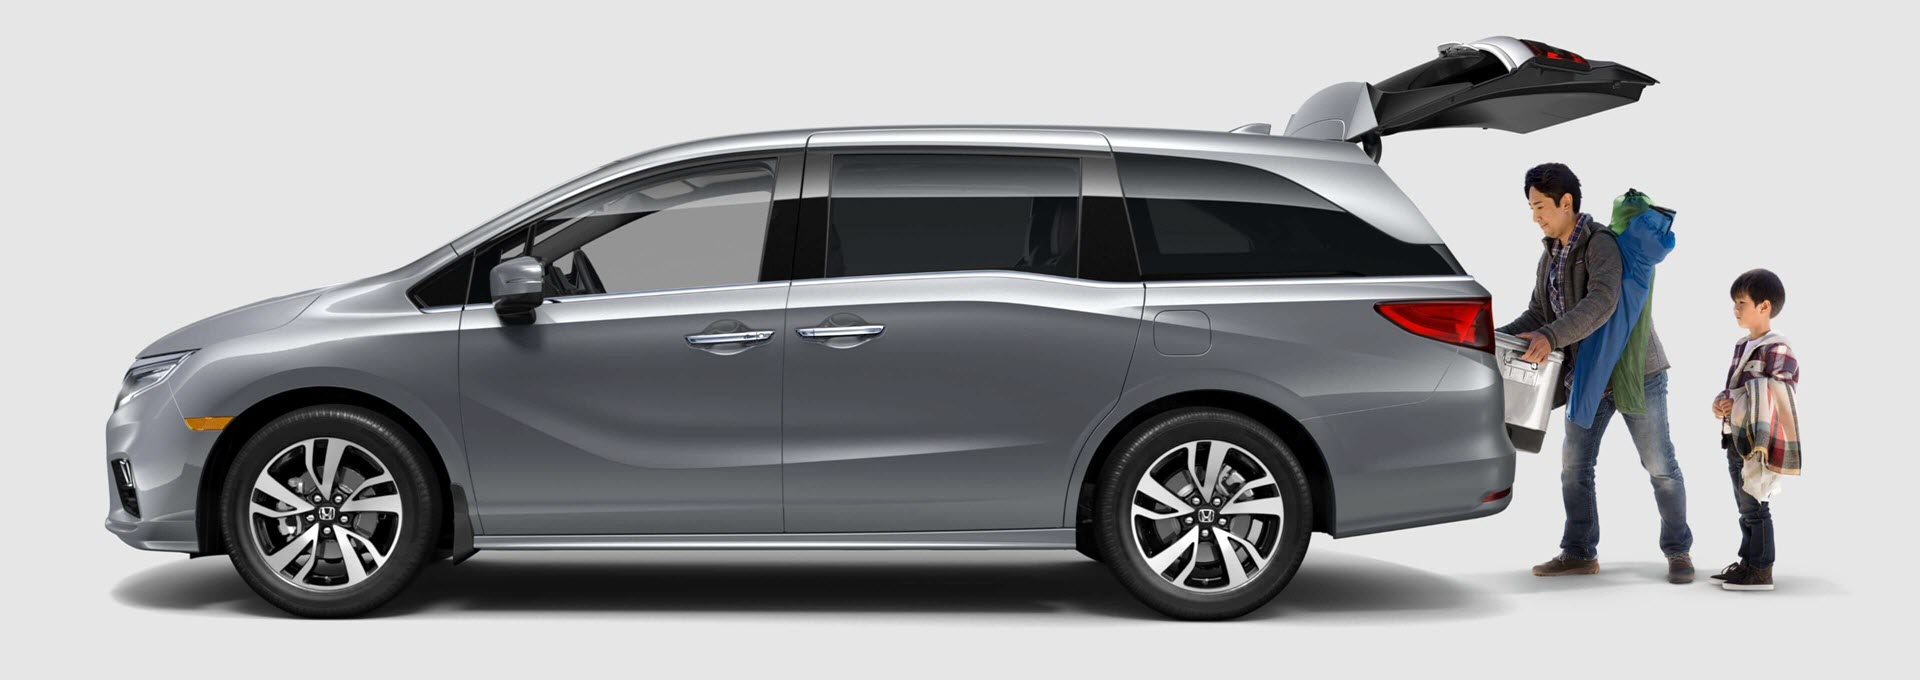 Attractive NEW 2018 HONDA ODYSSEY